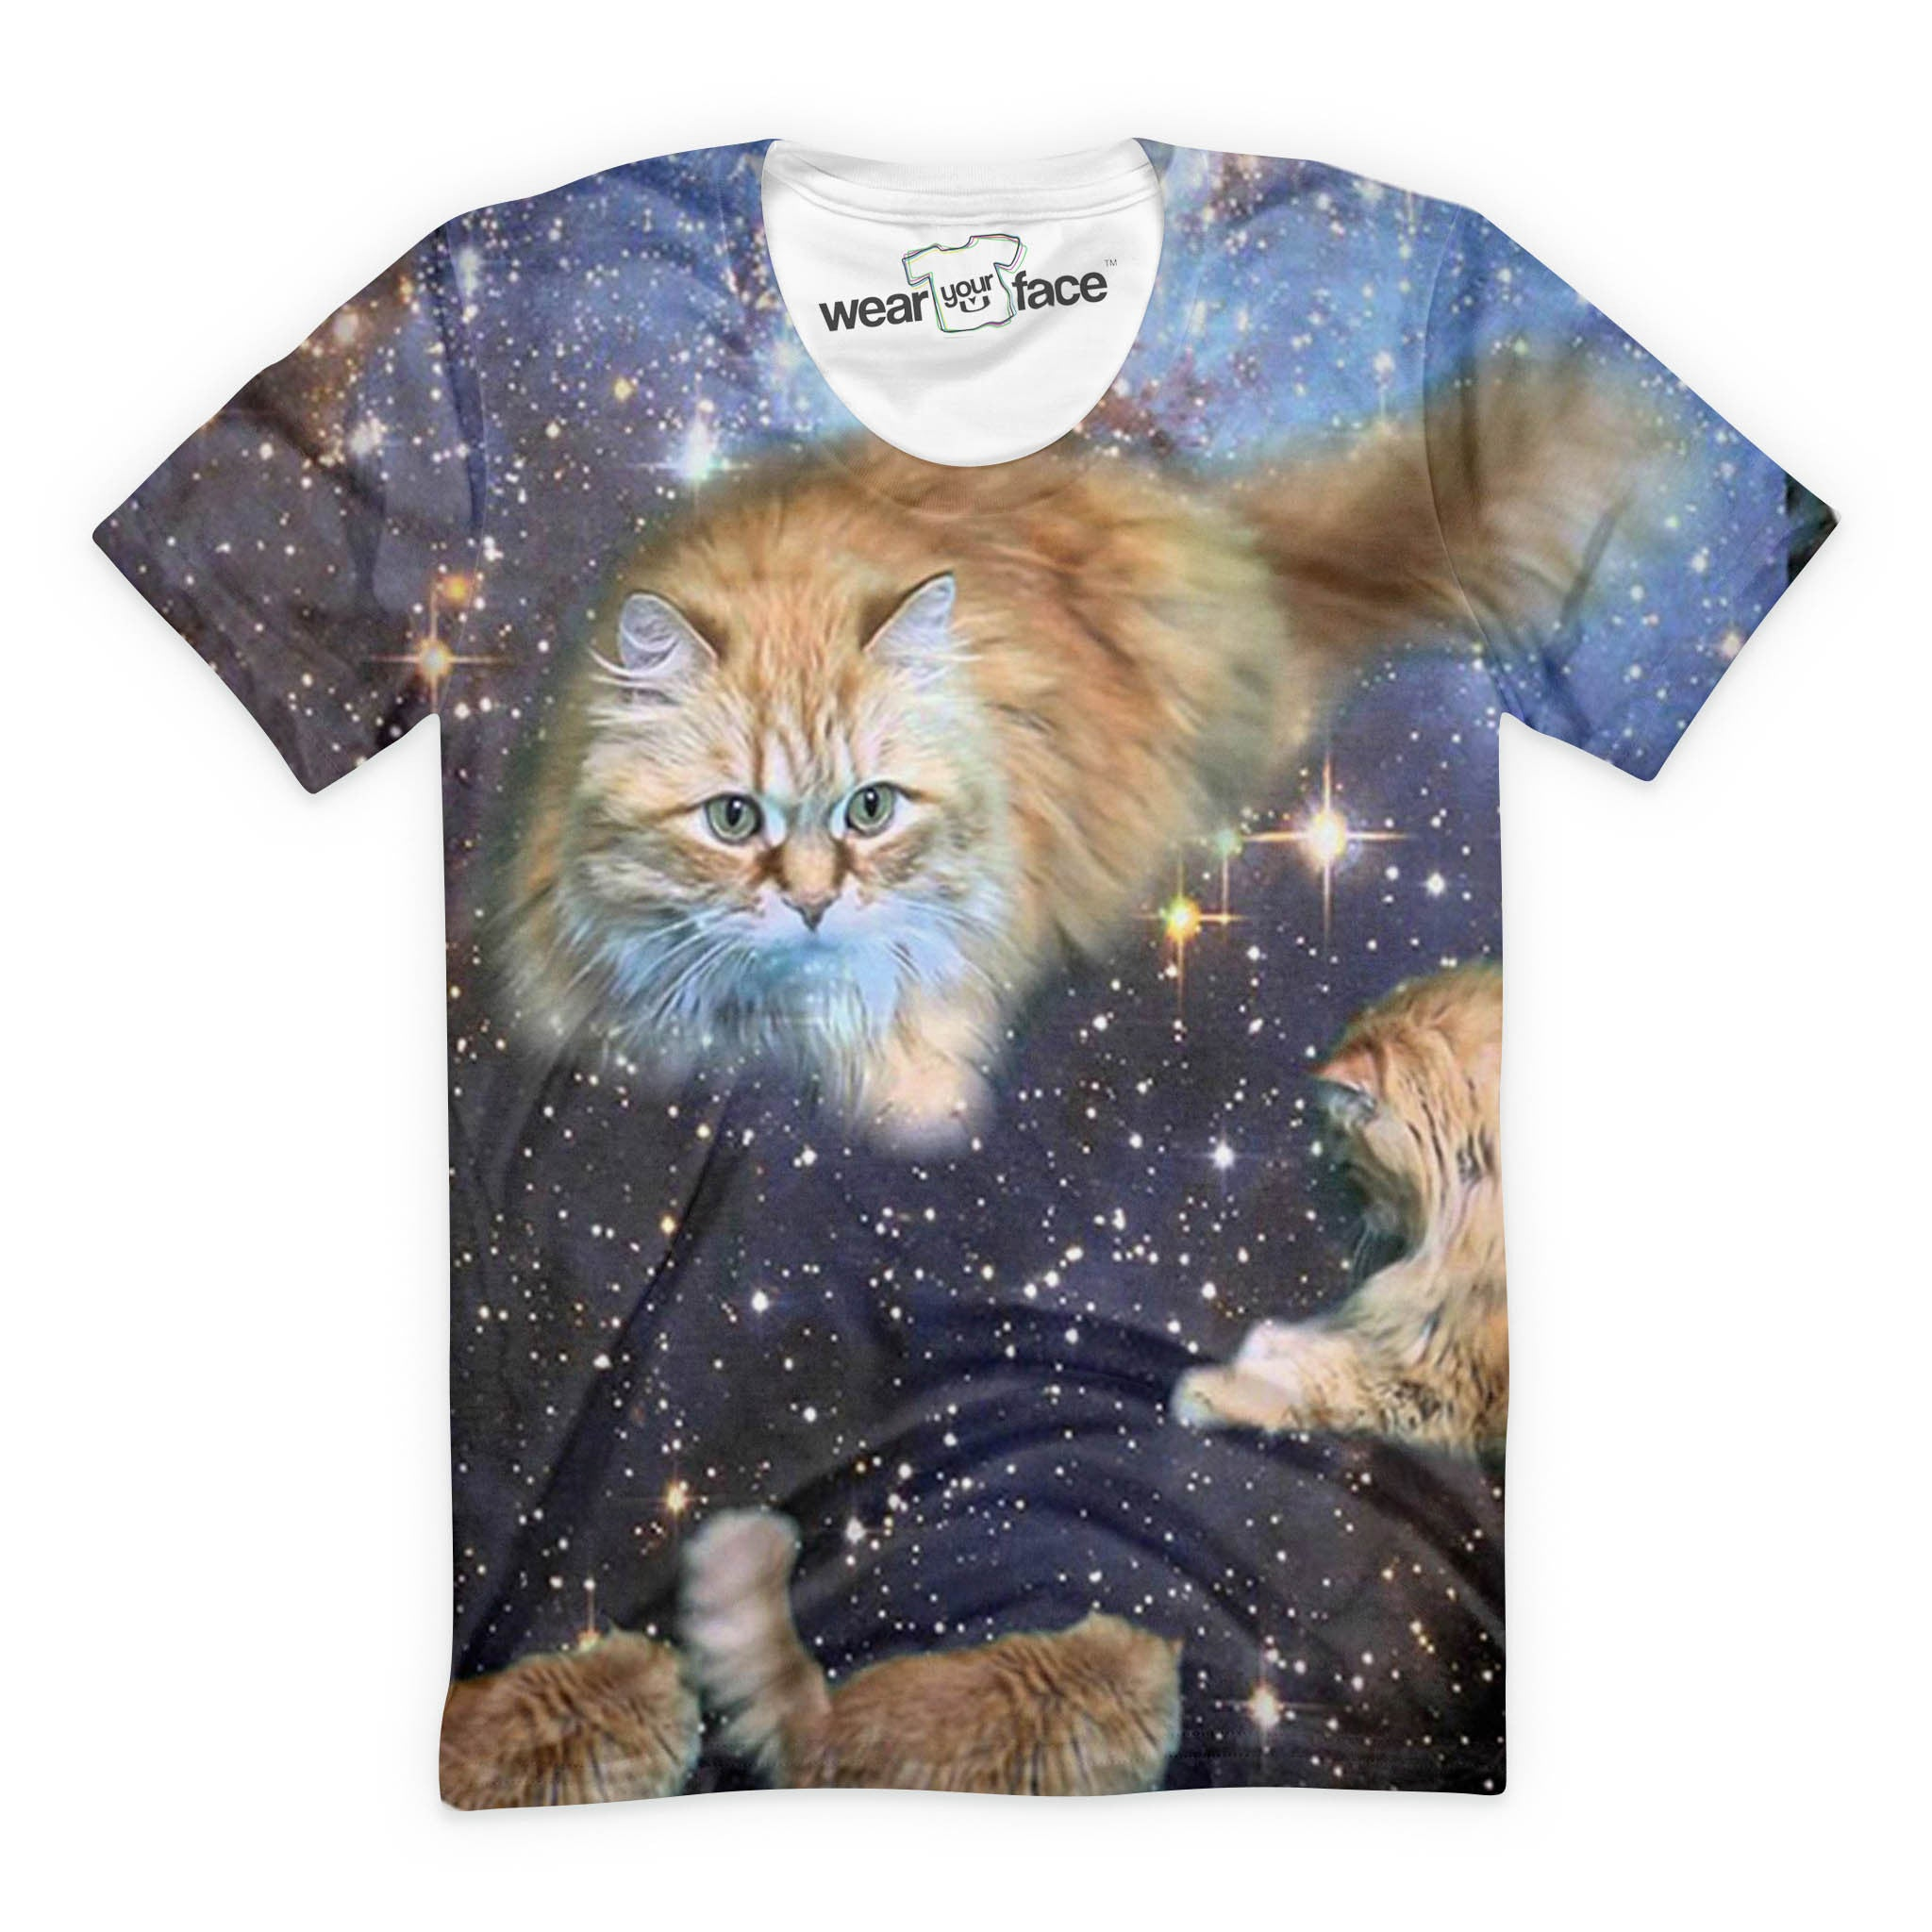 Intergalactic Catarary T-Shirt